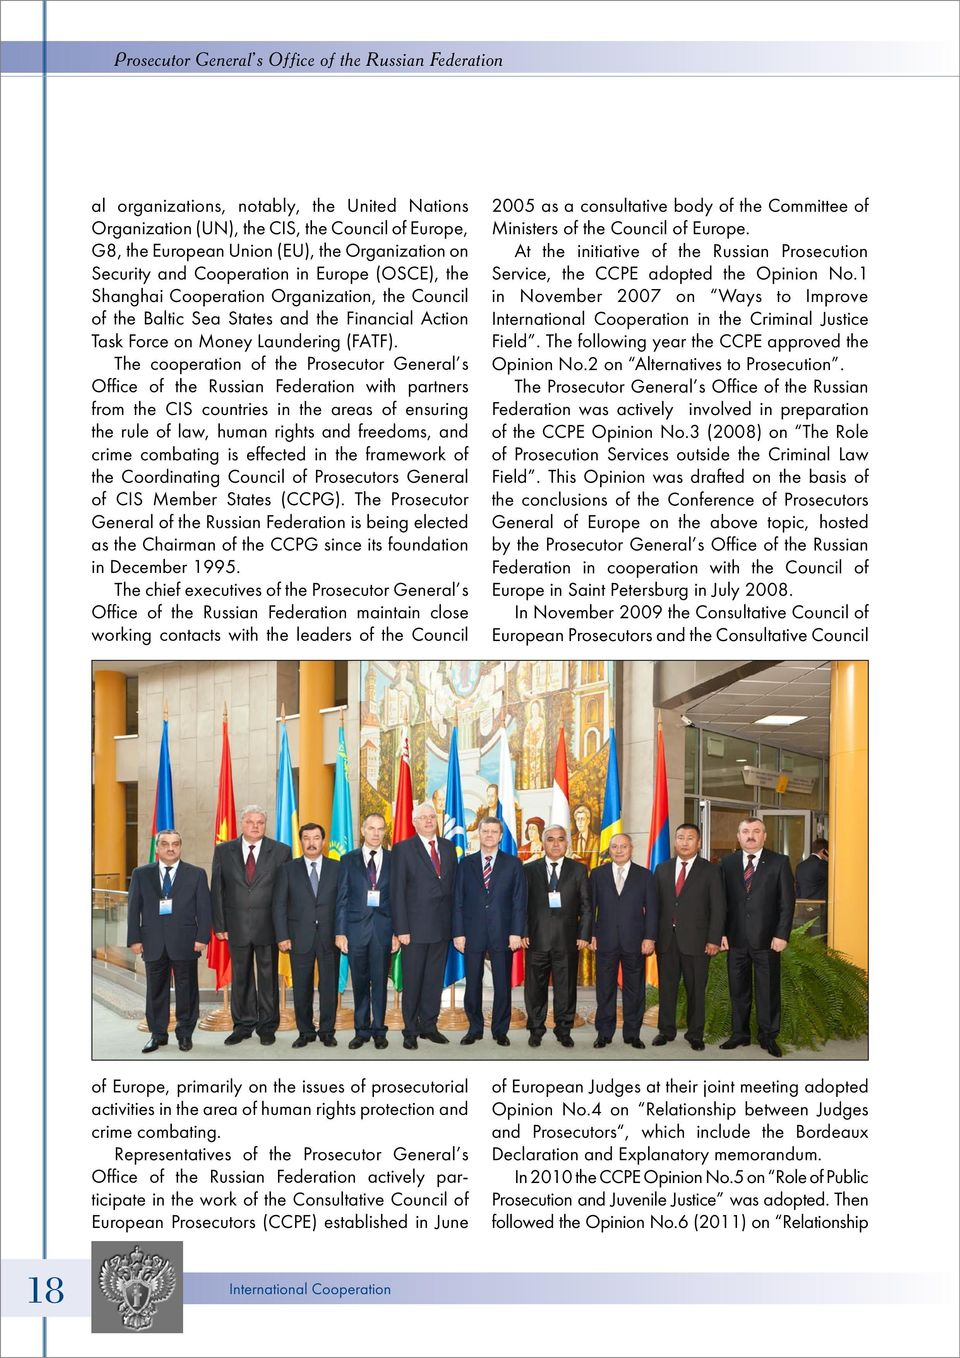 The cooperation of the Prosecutor General s Office of the Russian Federation with partners from the CIS countries in the areas of ensuring the rule of law, human rights and freedoms, and crime